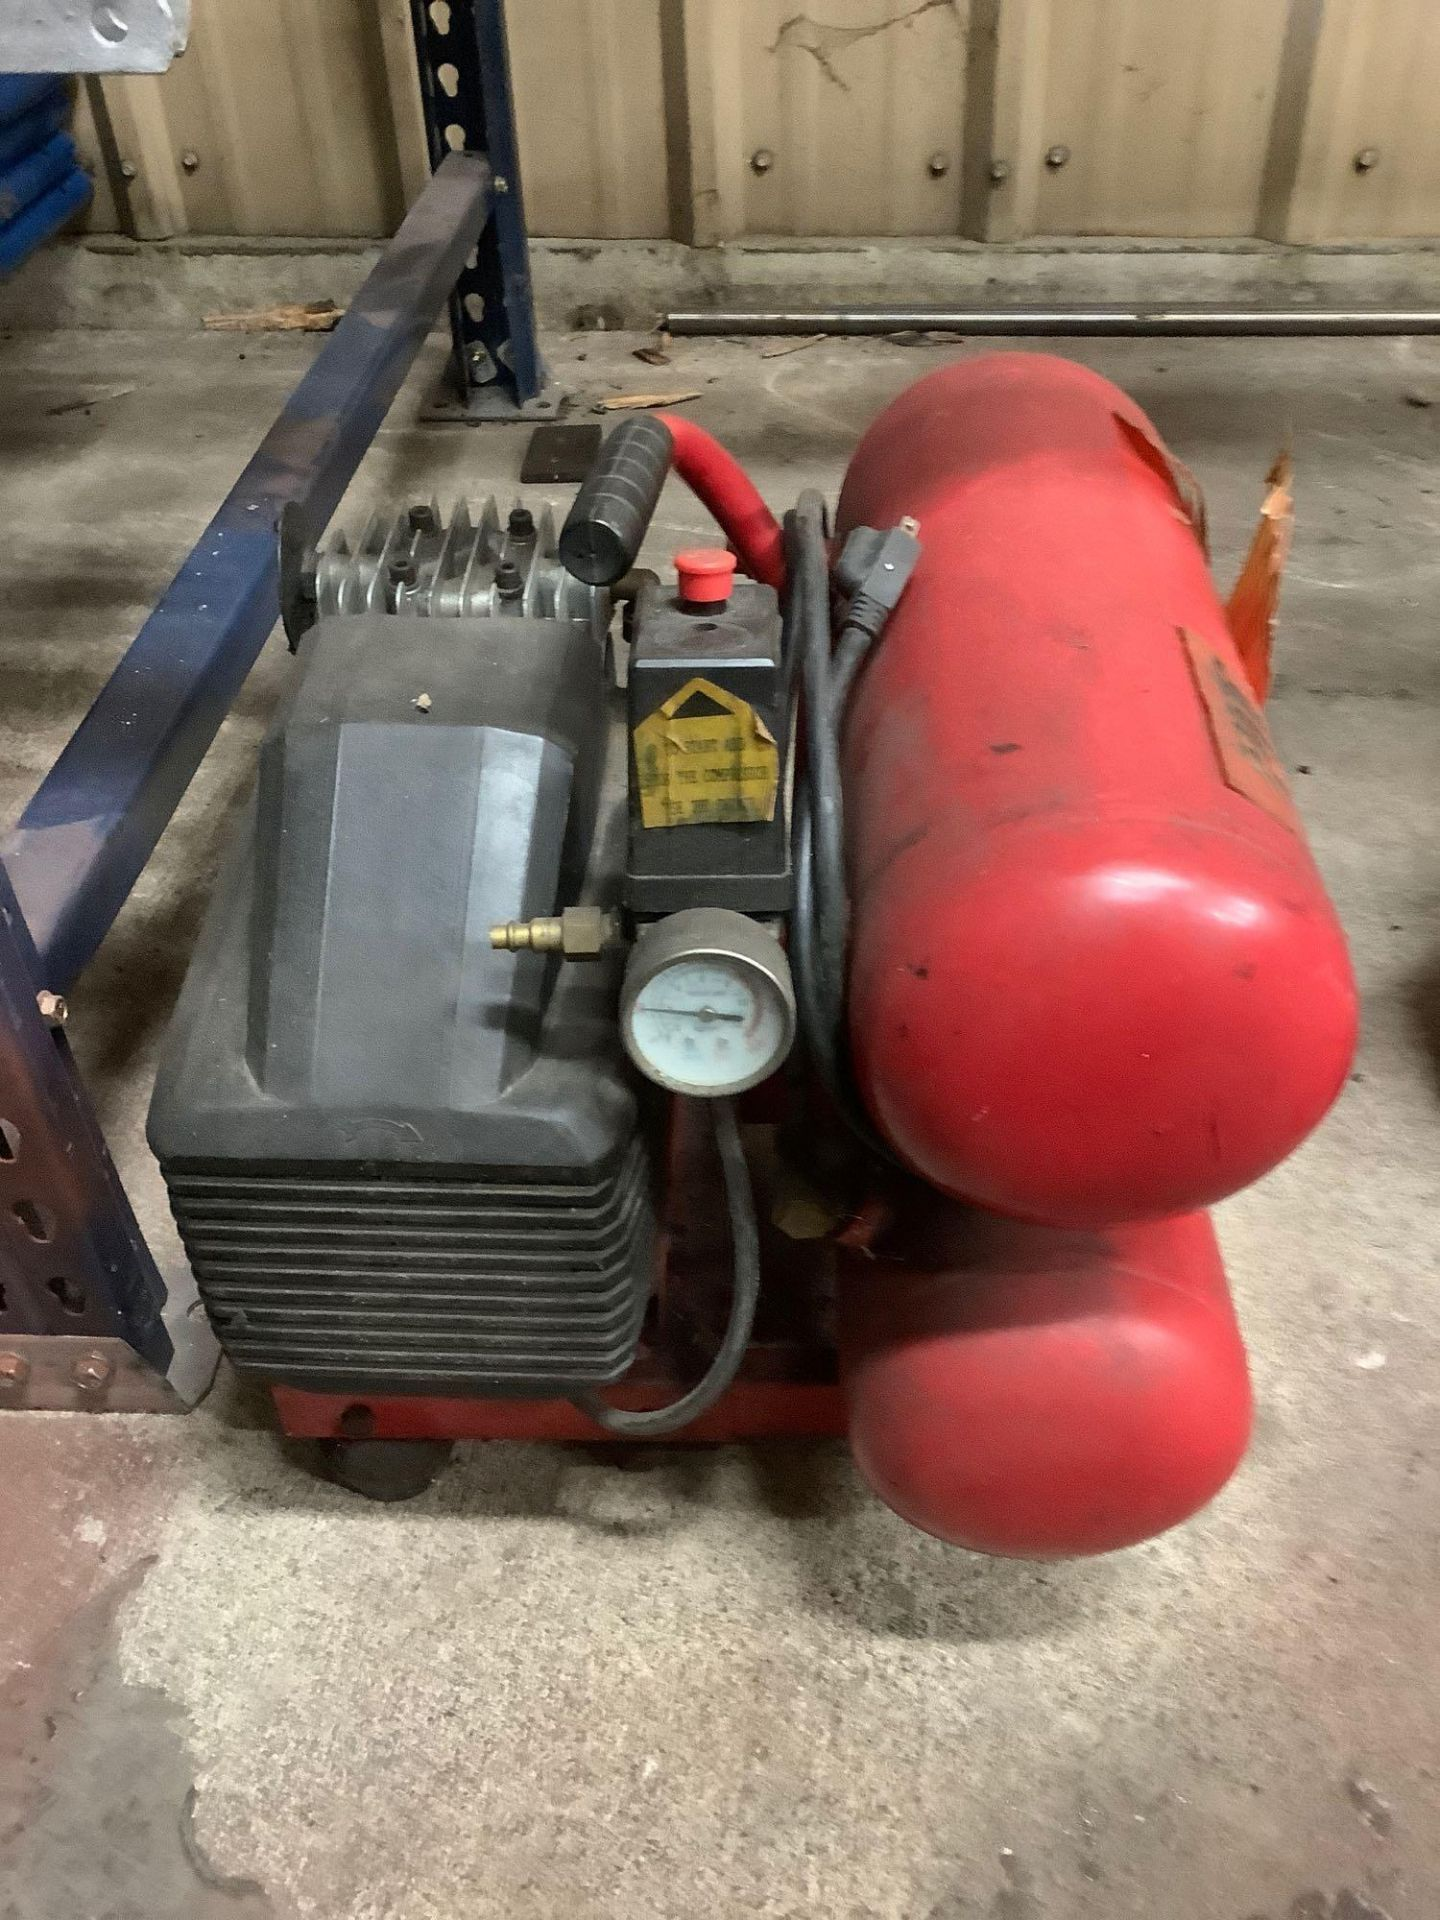 Lot of 2 Portable Air Compressors - Image 3 of 5